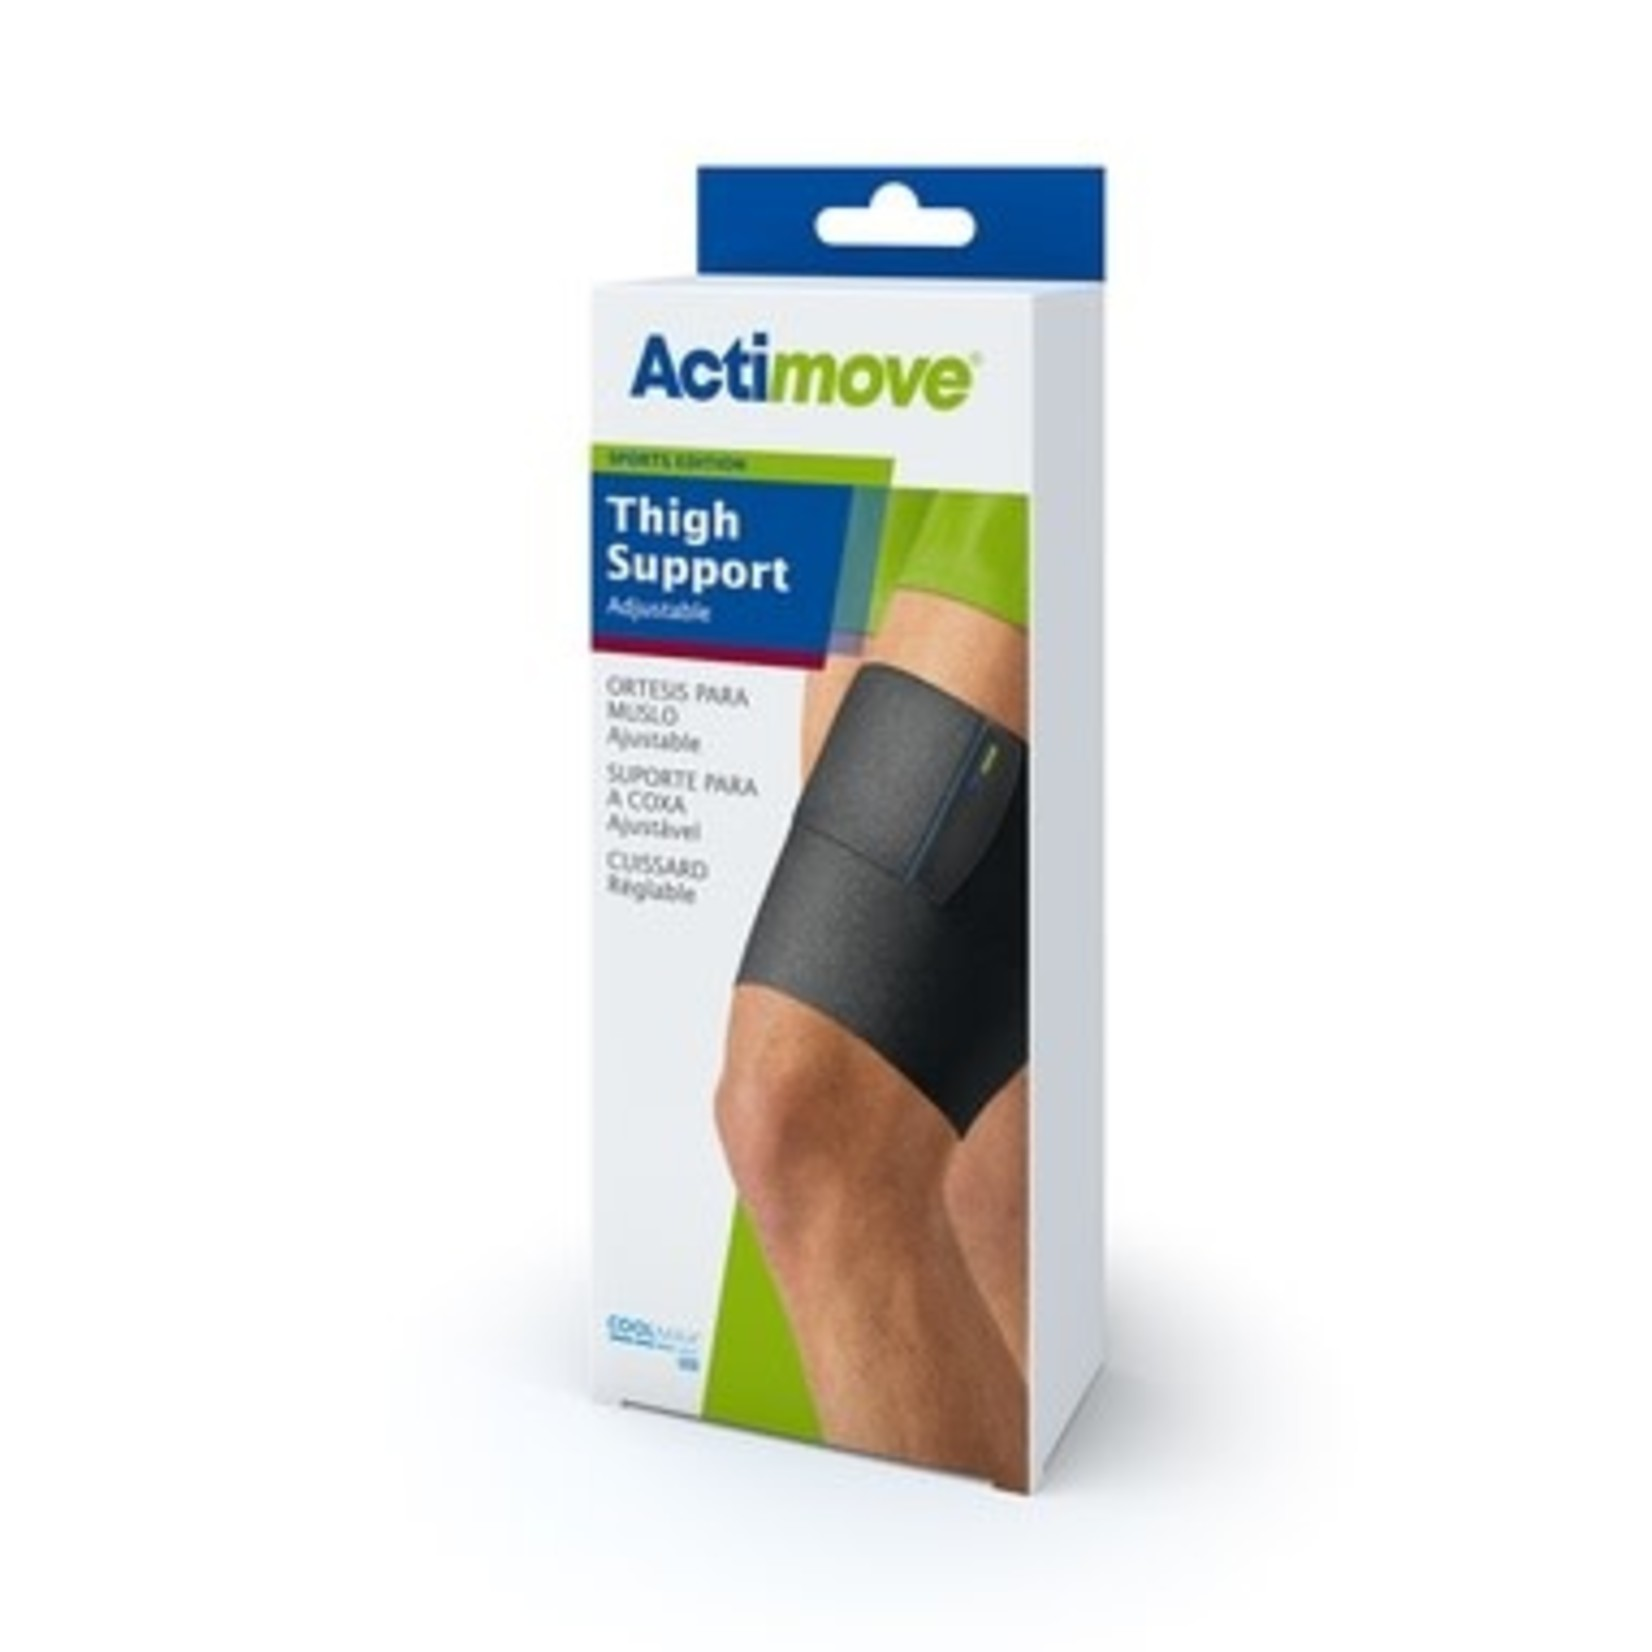 Actimove Actimove Thigh Support Adjustable Universal Black